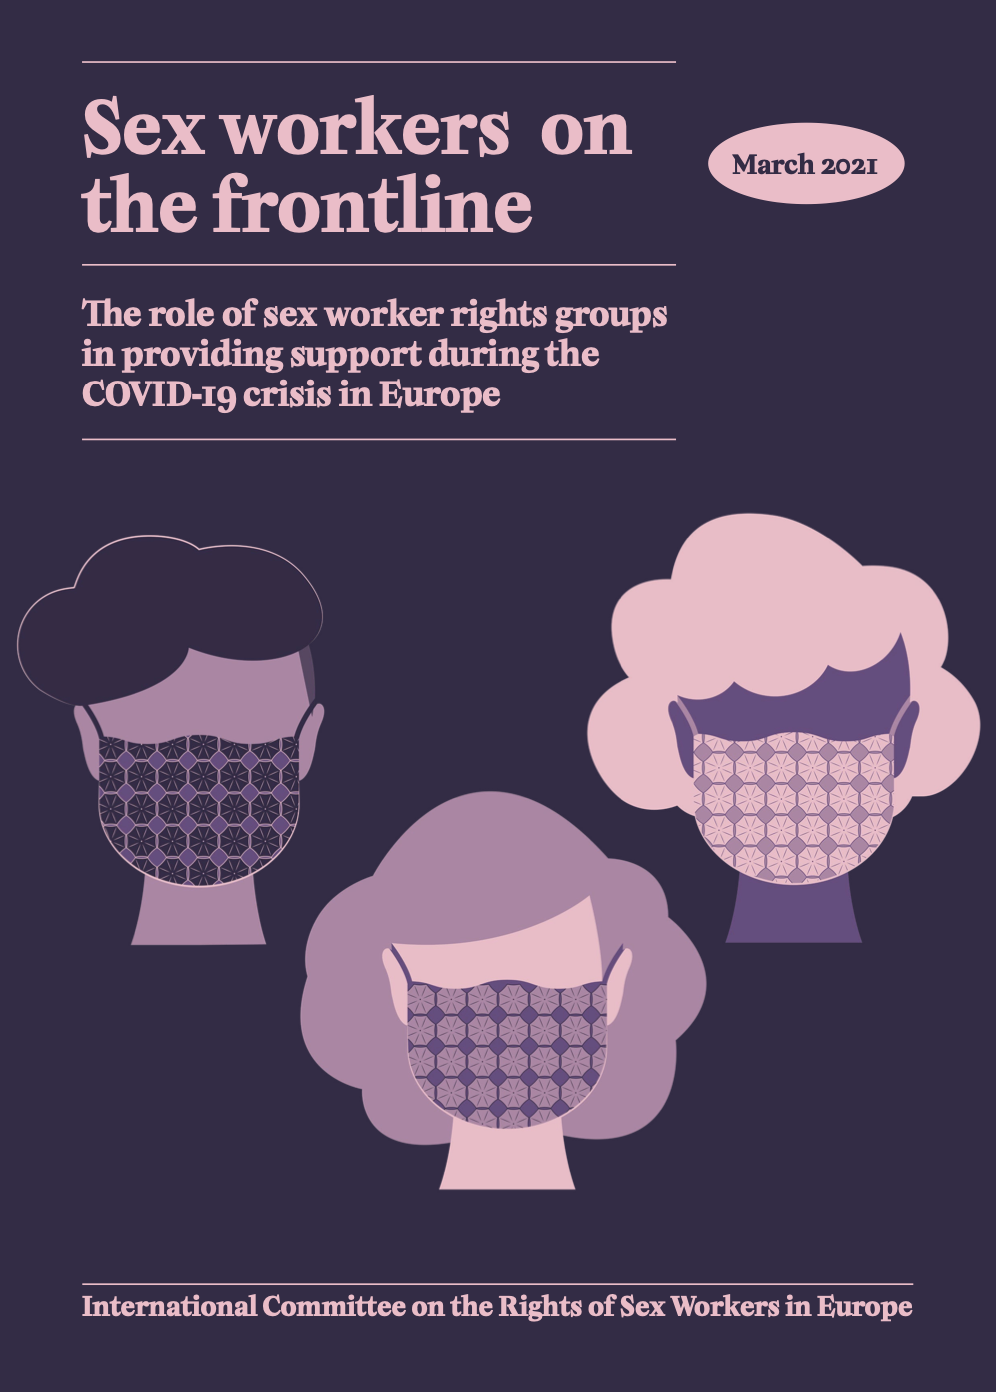 Sex Workers on the Frontline: The Role of the Sex Worker Rights Groups in Providing Support During the COVID19 Pandemic